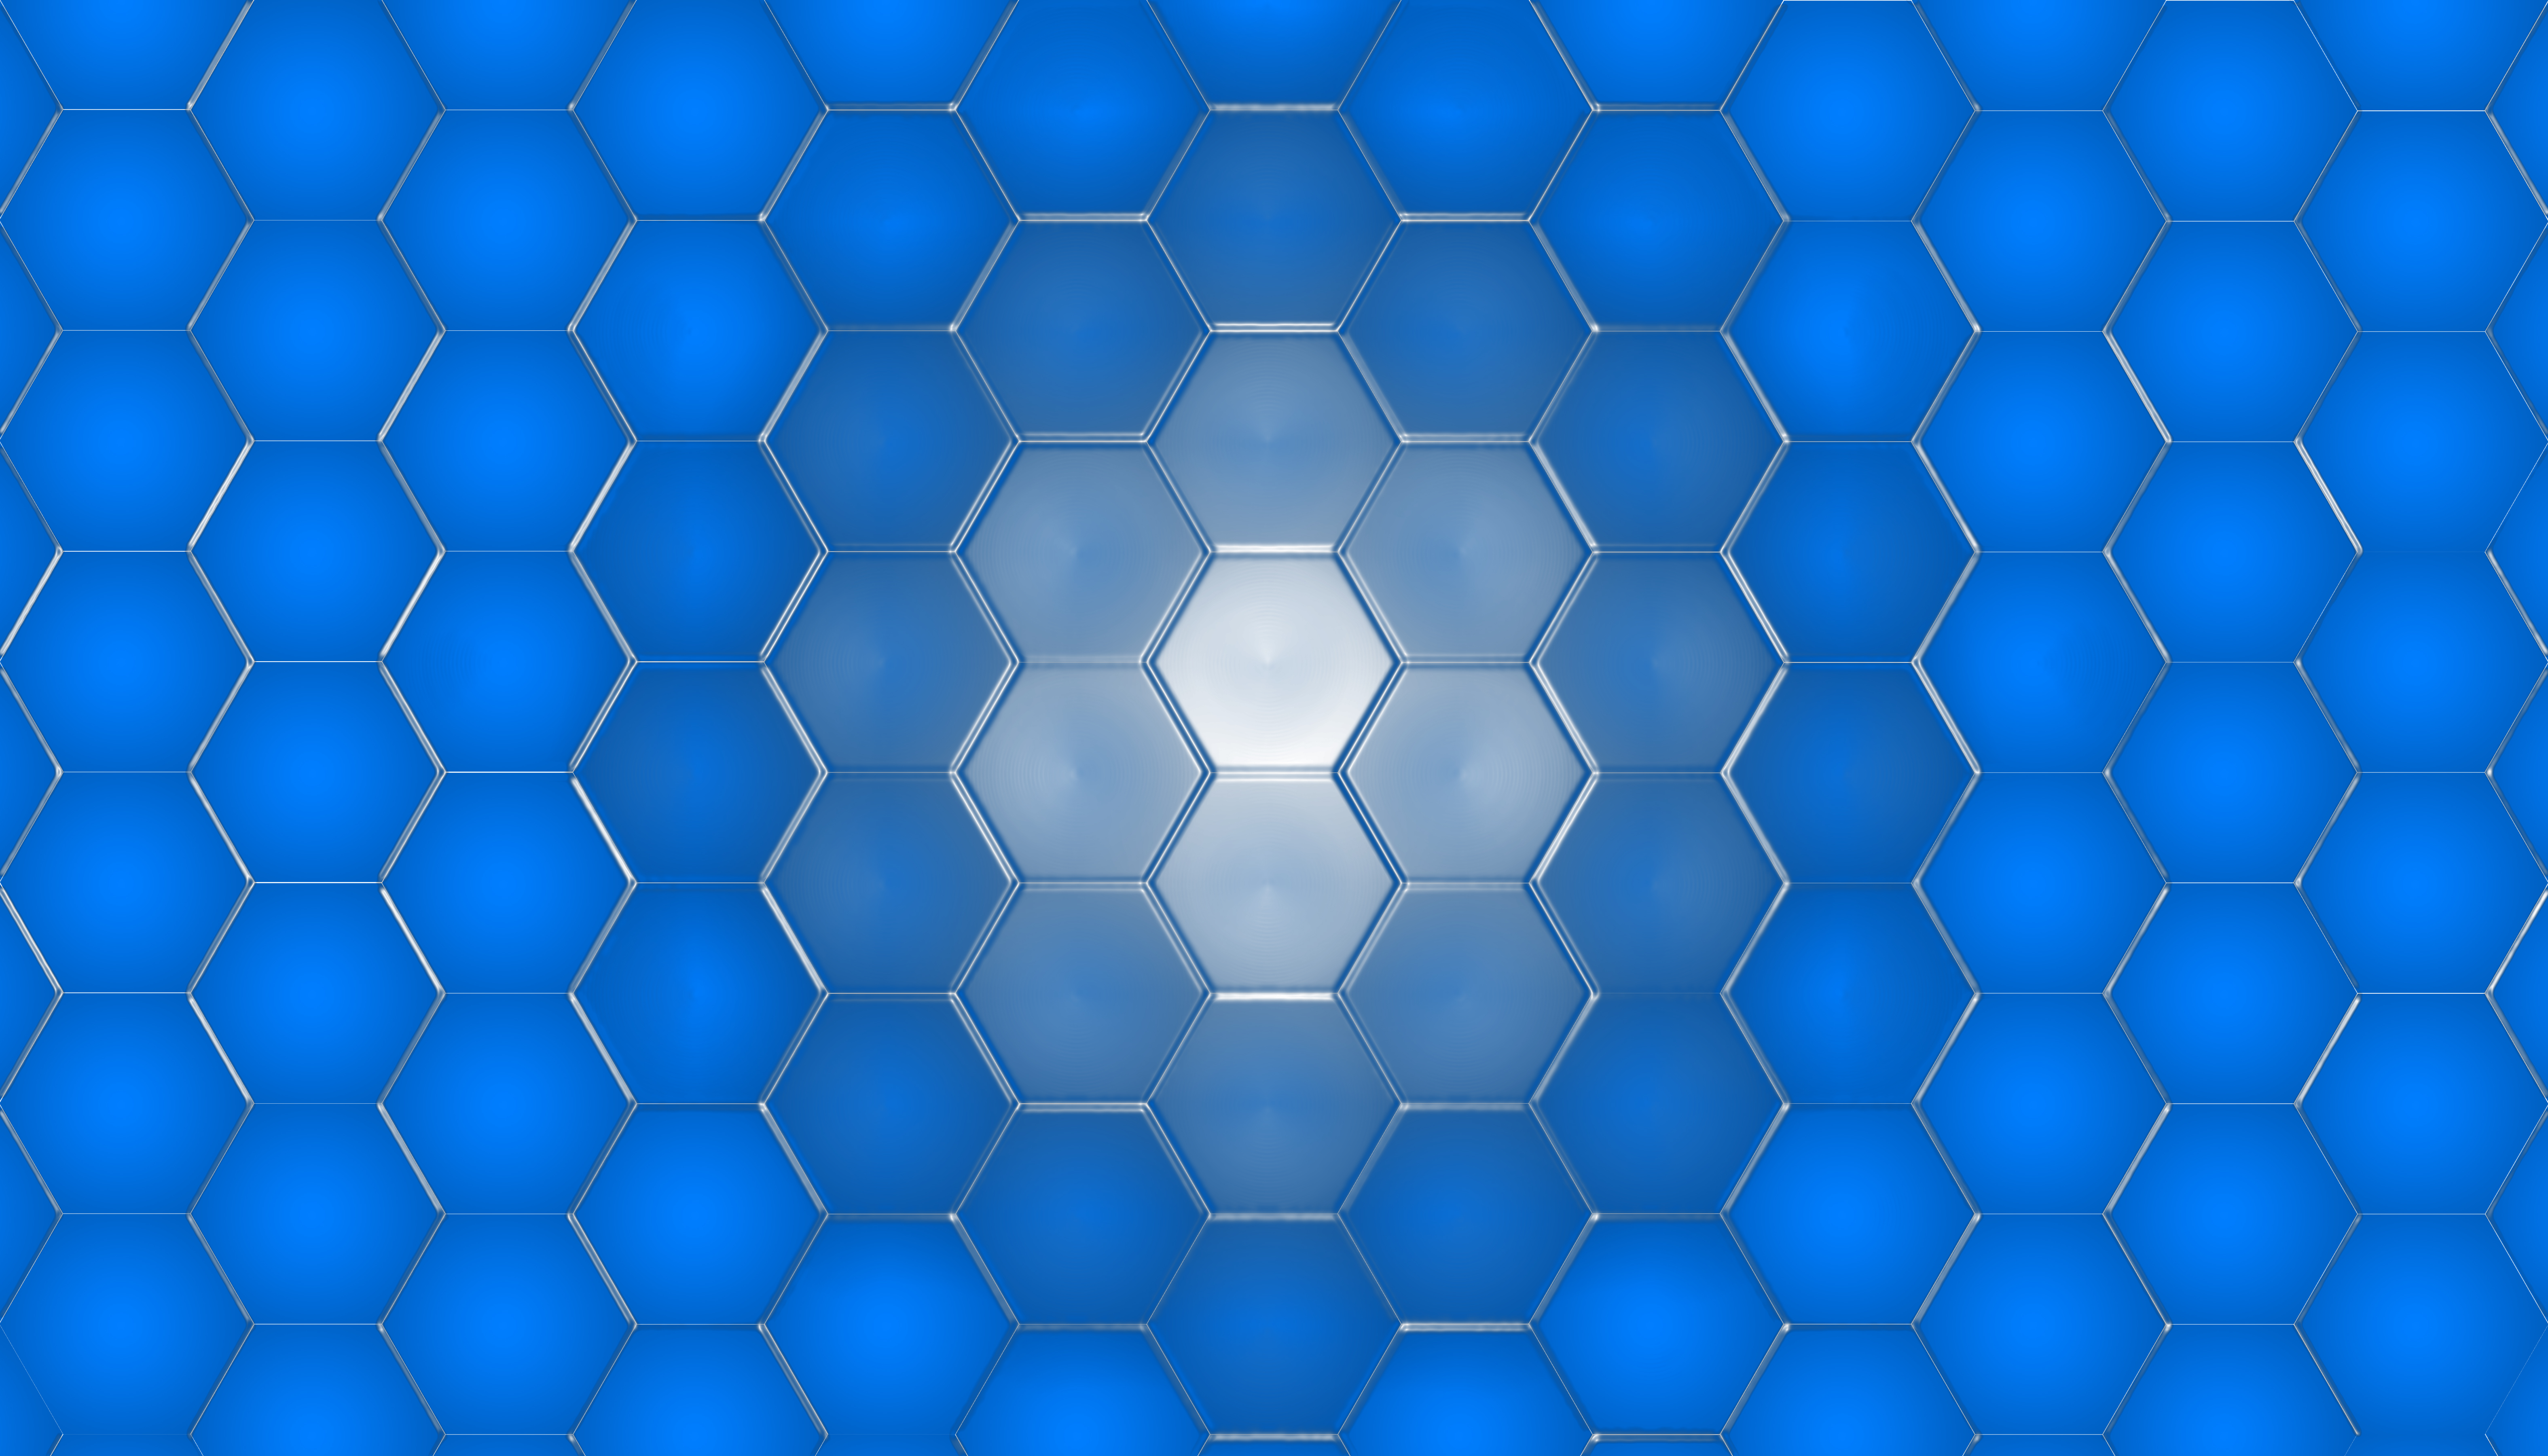 Technology Hexagon Desktop Background